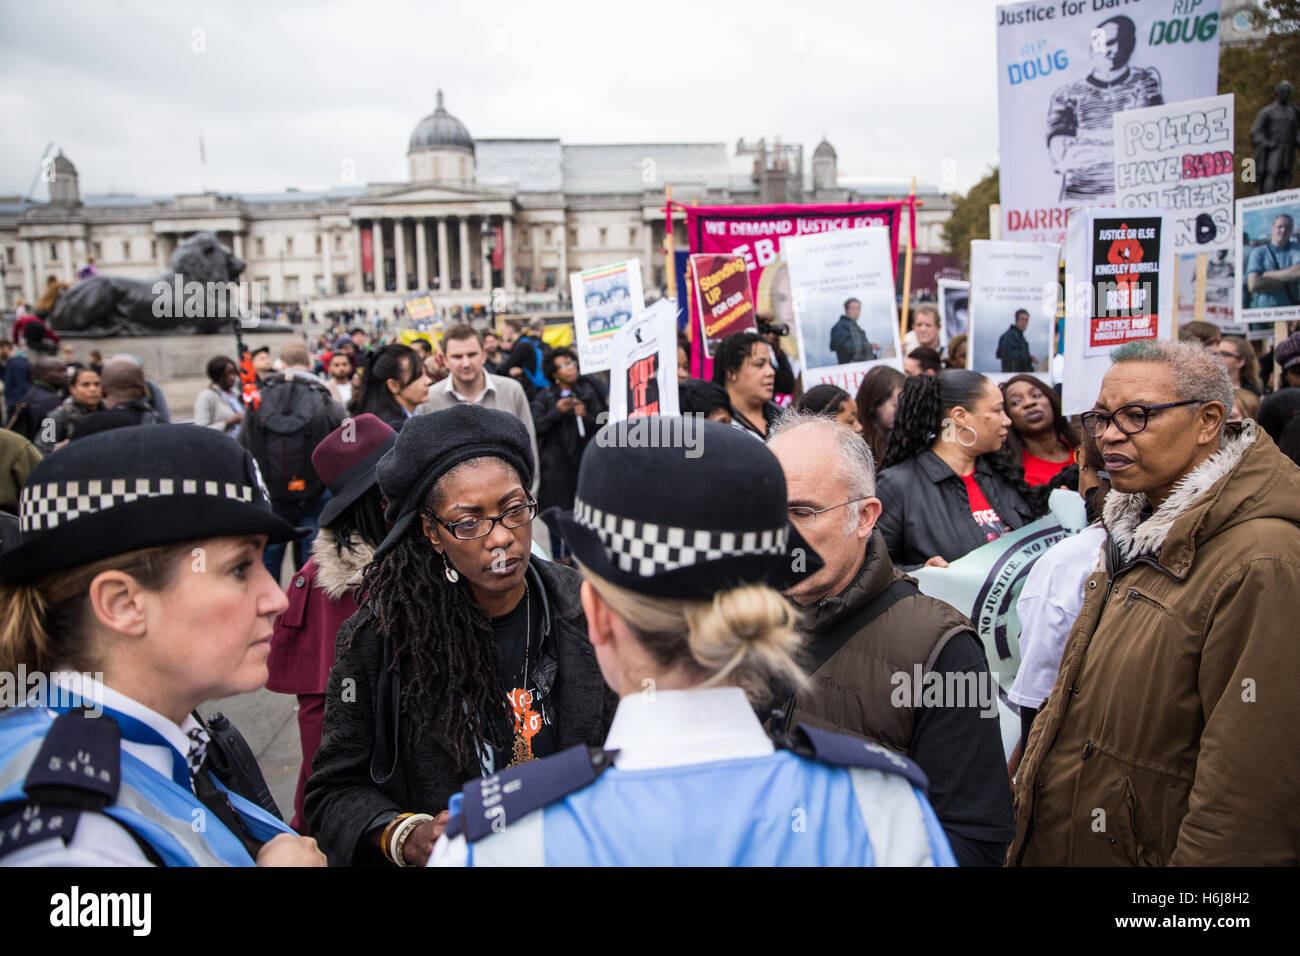 London, UK. 29th October, 2016. Marcia Rigg and Ken Fero speak to police officers before the United Families and - Stock Image